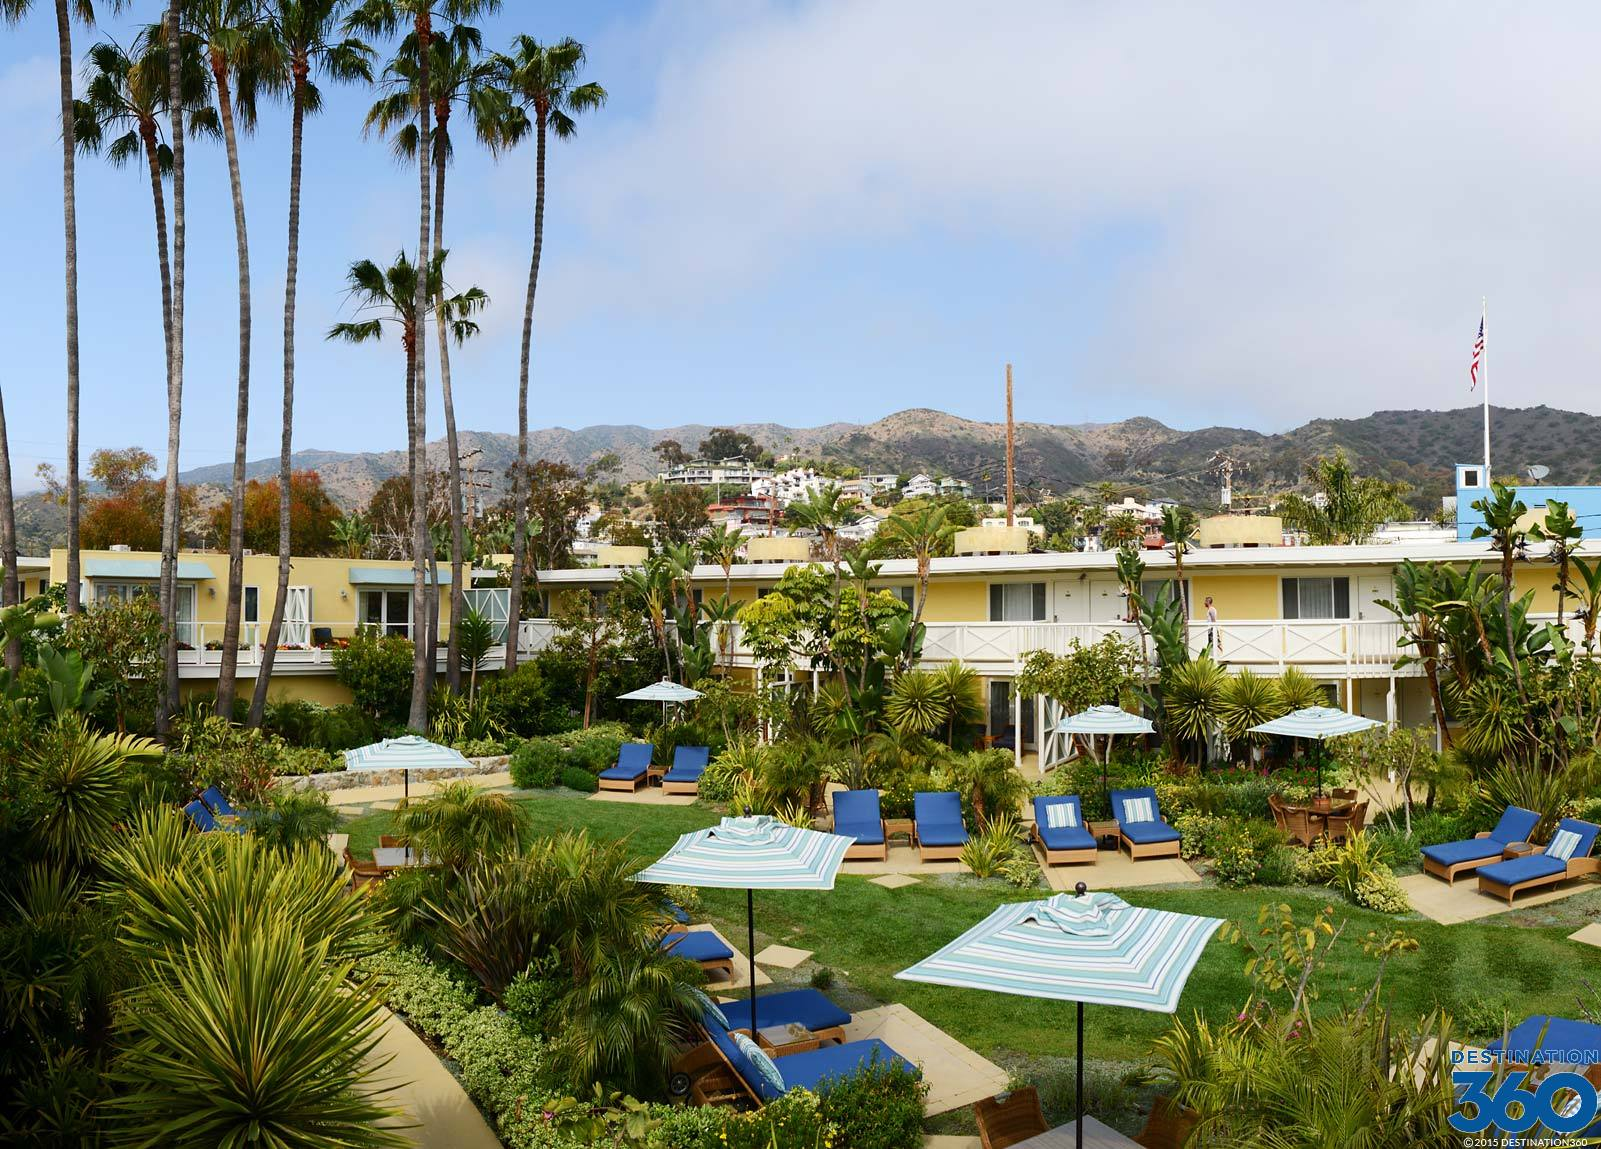 Catalina Island Hotels Virtual Tour